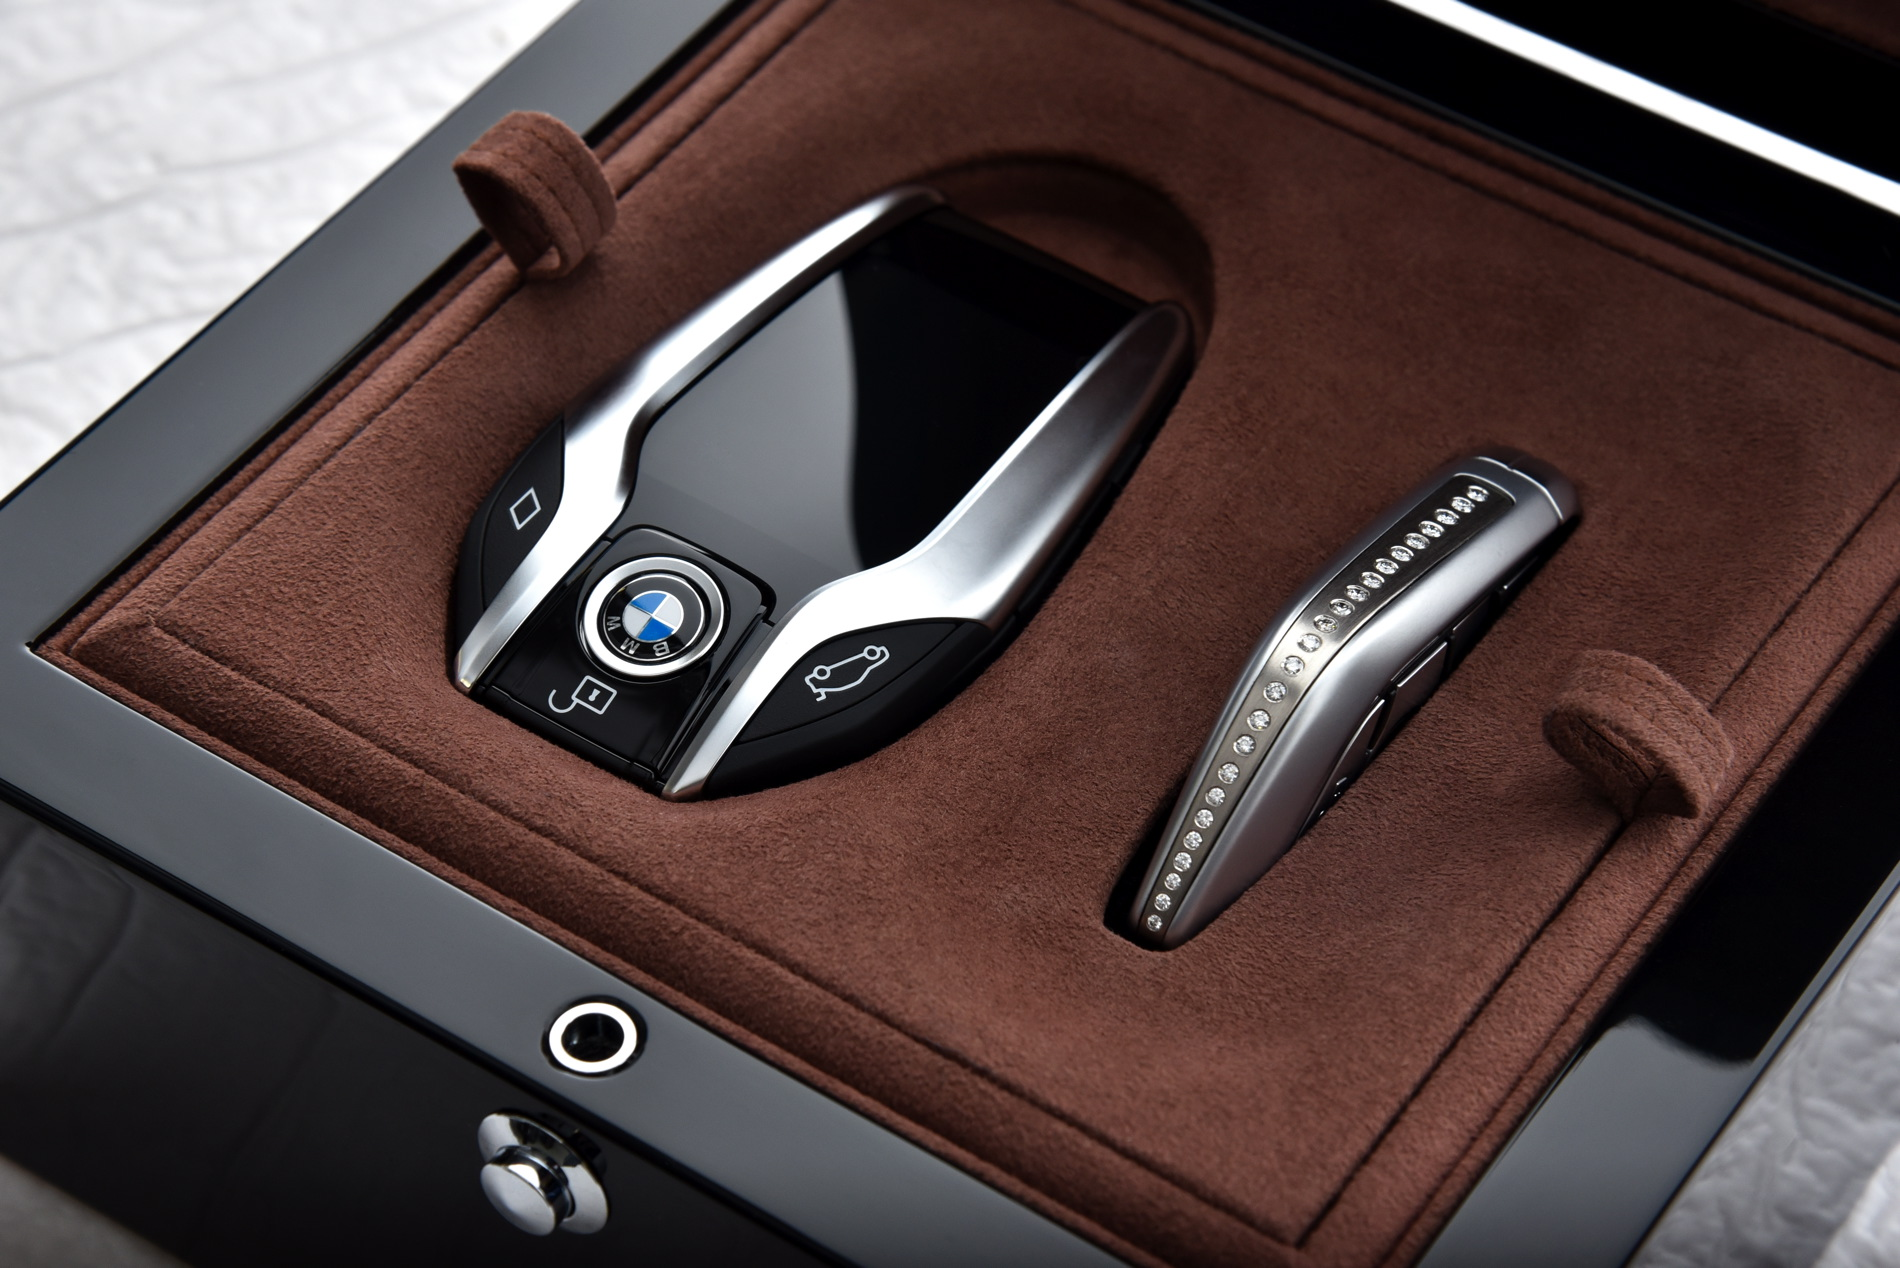 Solitaire and Master Class Edition based on the new BMW